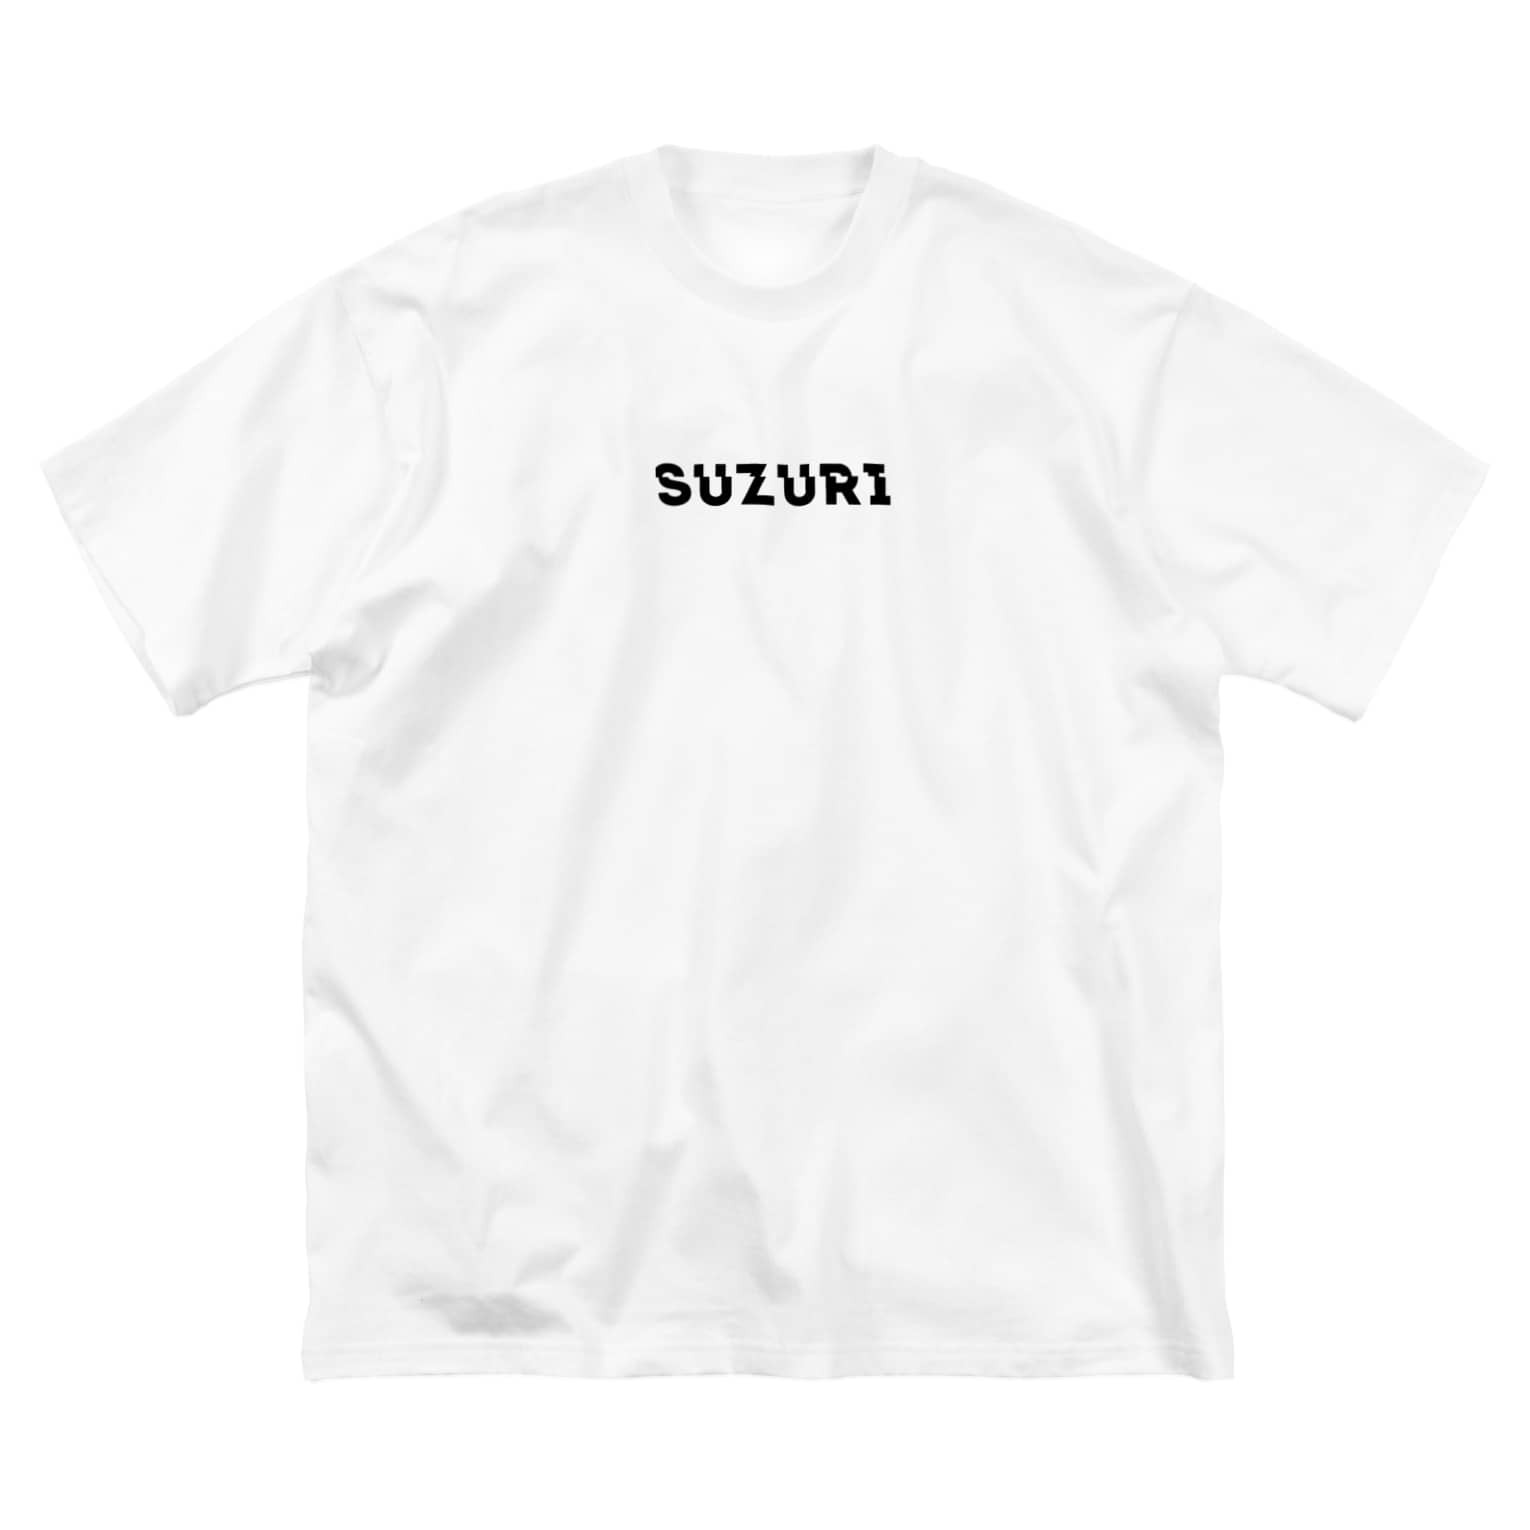 Big silhouette T-shirts